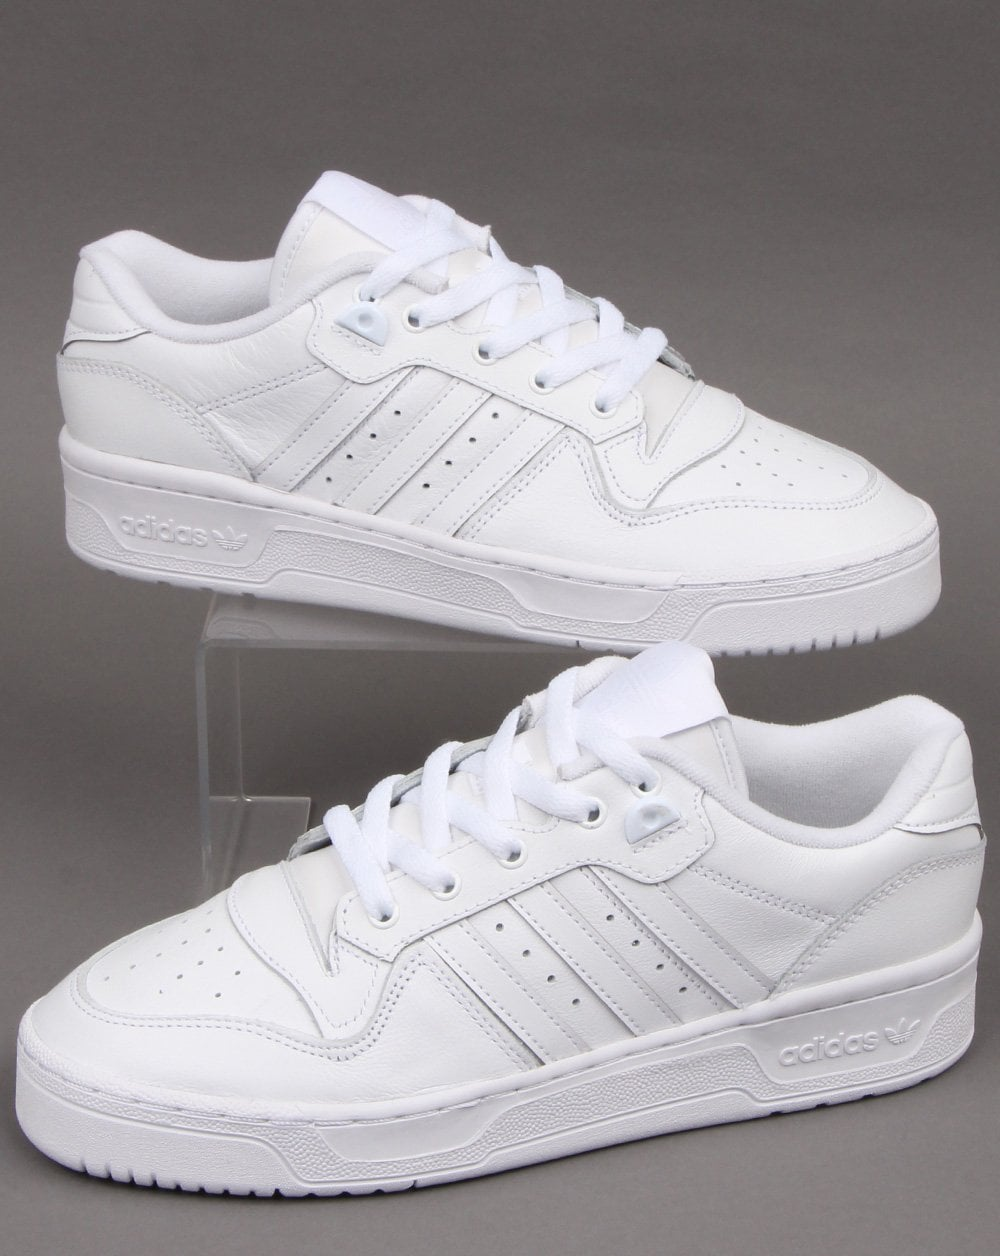 Adidas Rivalry Low Trainers White/White